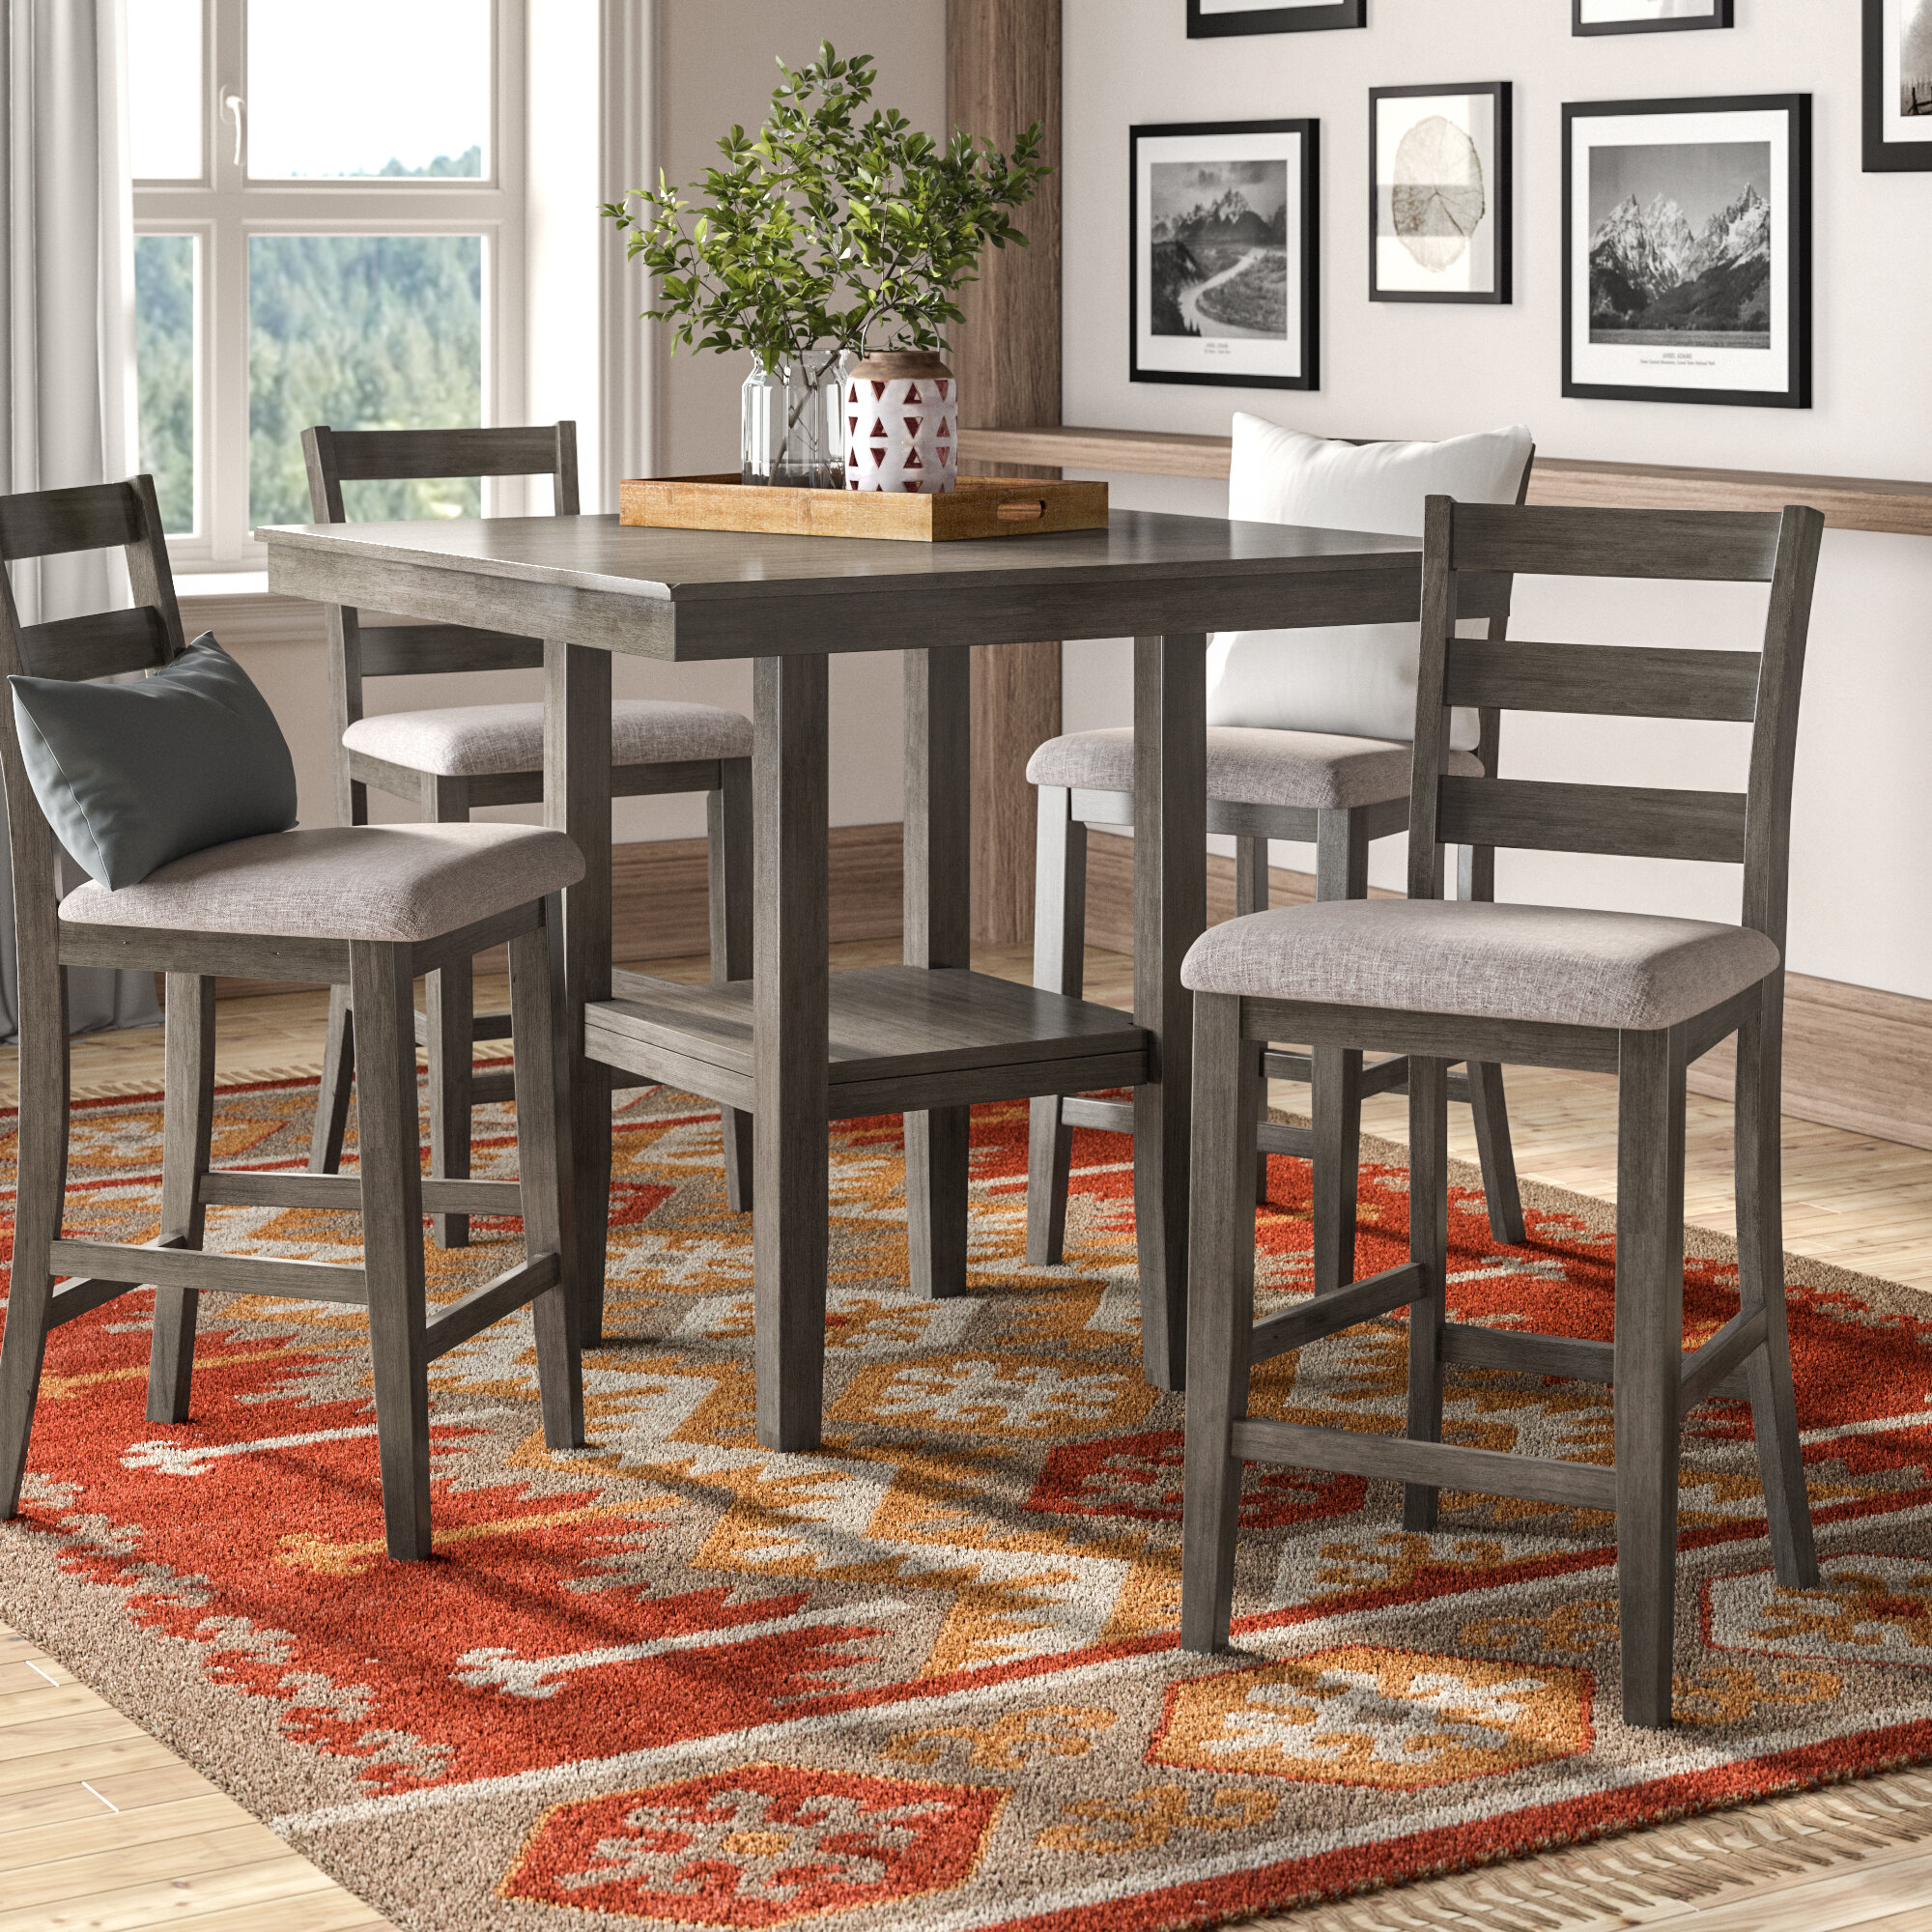 Counter Height Rustic Kitchen Dining Room Sets You Ll Love In 2021 Wayfair